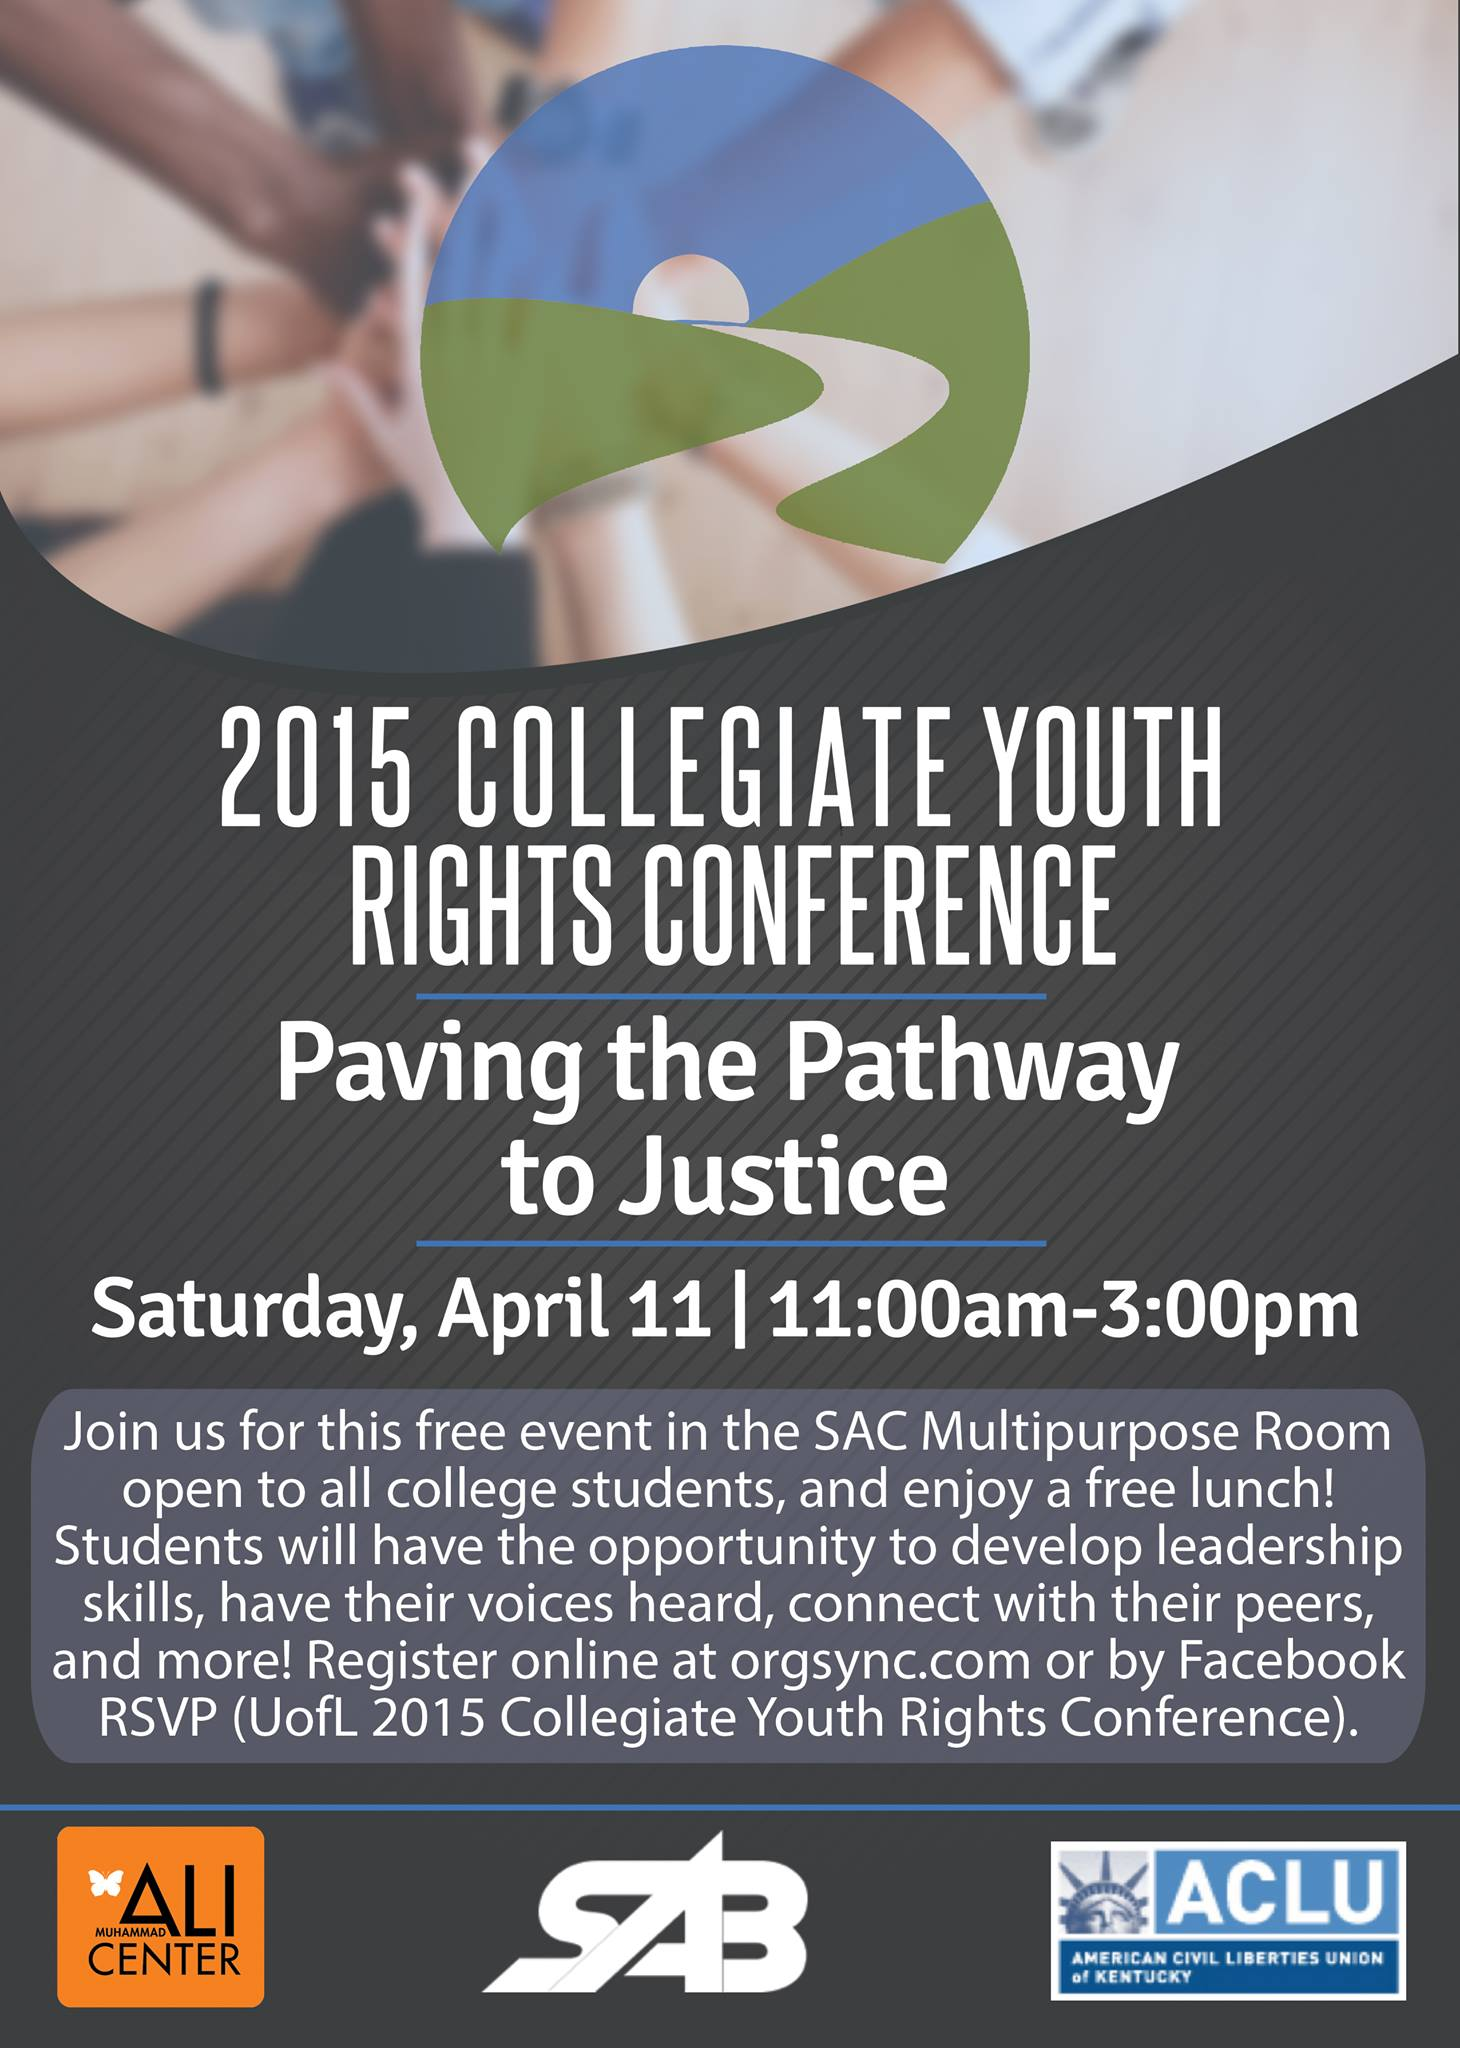 McConnell Scholars lead 2015 Collegiate Youth Rights Conference